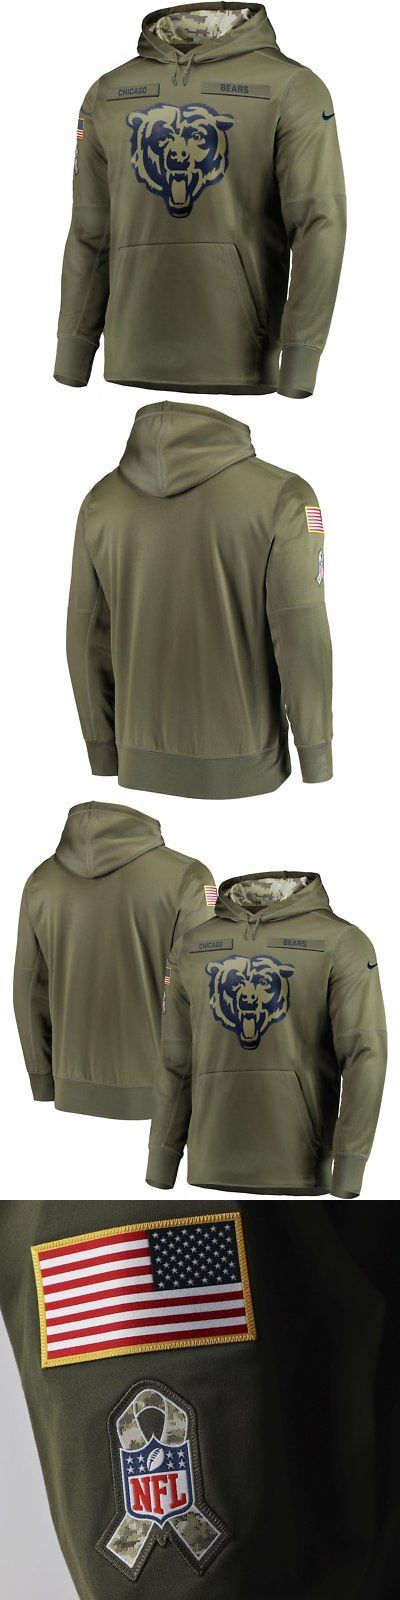 Clothing 21218  Mens Xl Nike Chicago Bears 2018 Salute To Service Hoodie  Army Military Green -  BUY IT NOW ONLY   249.99 on  eBay  clothing  chicago   bears ... 604278346